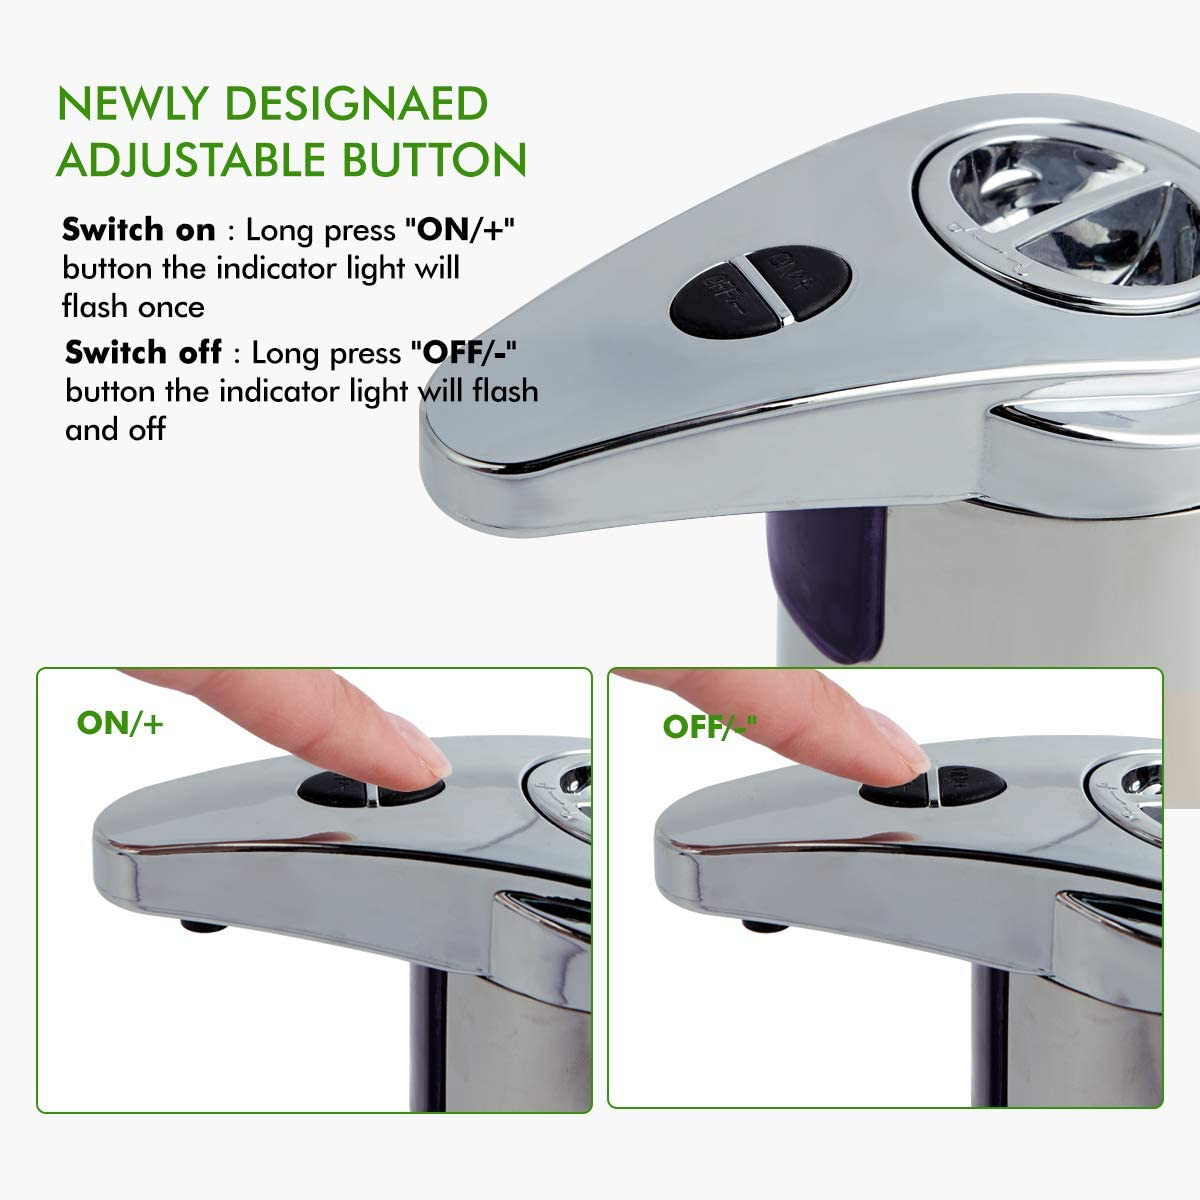 [VinJoyce] NEW 2 Buttons 250ML Automatic Stainless Steel Soap Dispenser Touchless Sensor Hand Soap Dispenser Double Switch Motion Sensor for Bathroom Kitchen Toilet Office Hotel Hospital Clinic School